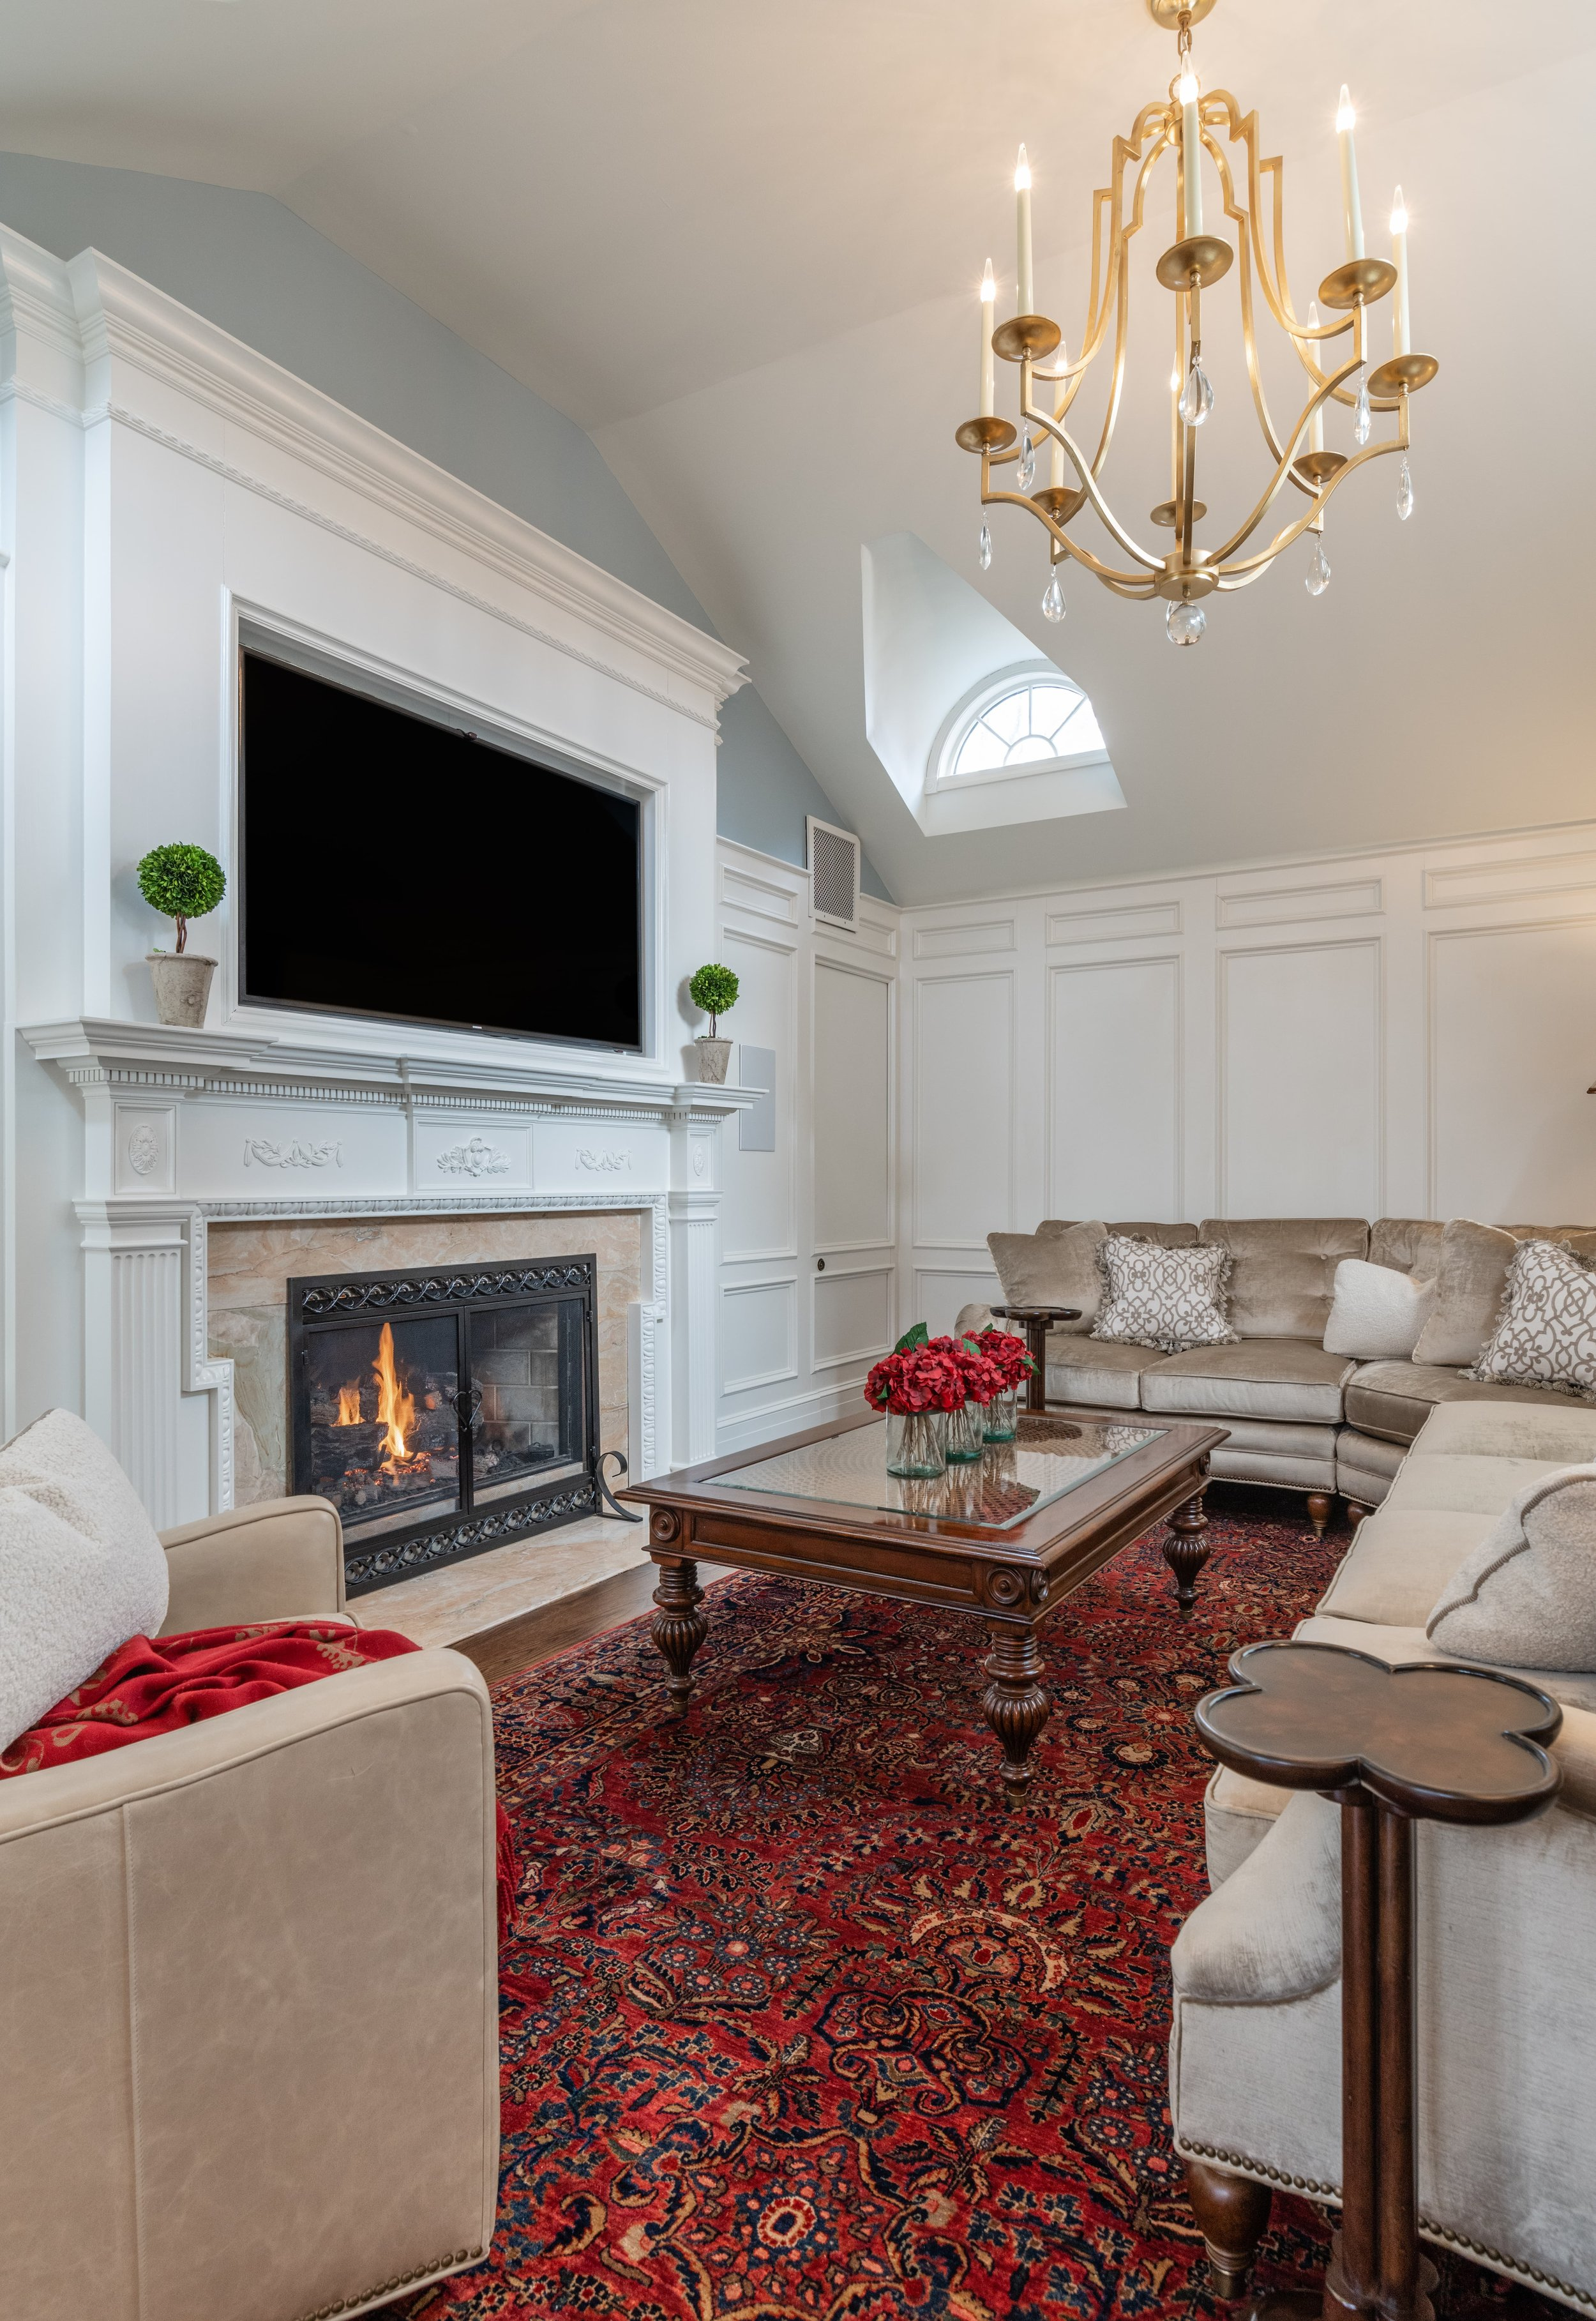 interior-design-remodel-new-build-construction-washington-d-c-san-fransisco-13-min.jpg